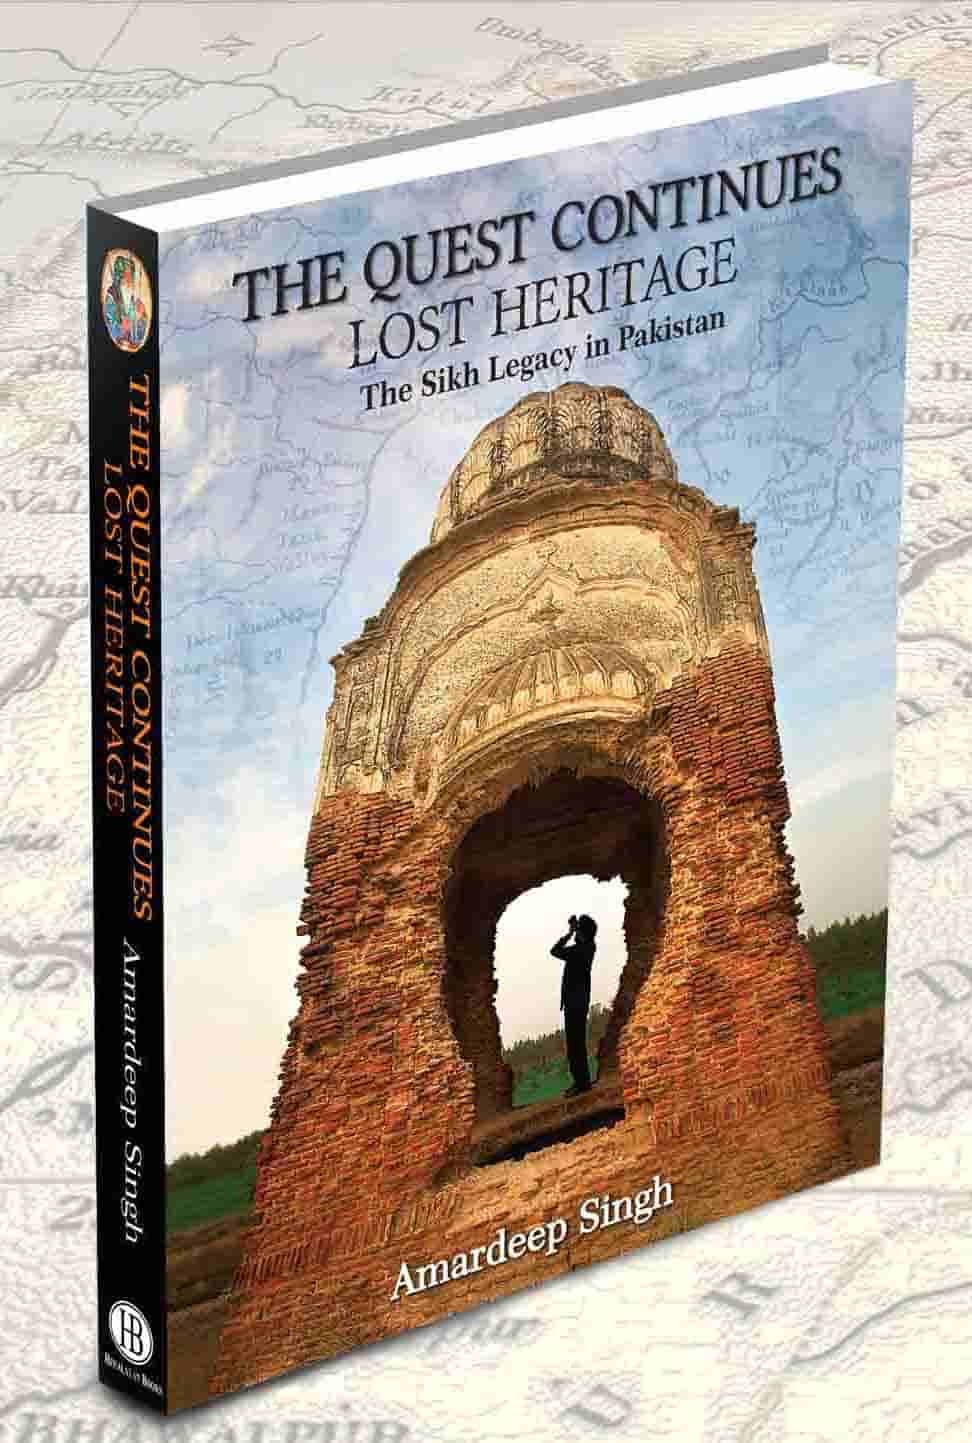 The Quest Continues Lost Heritage